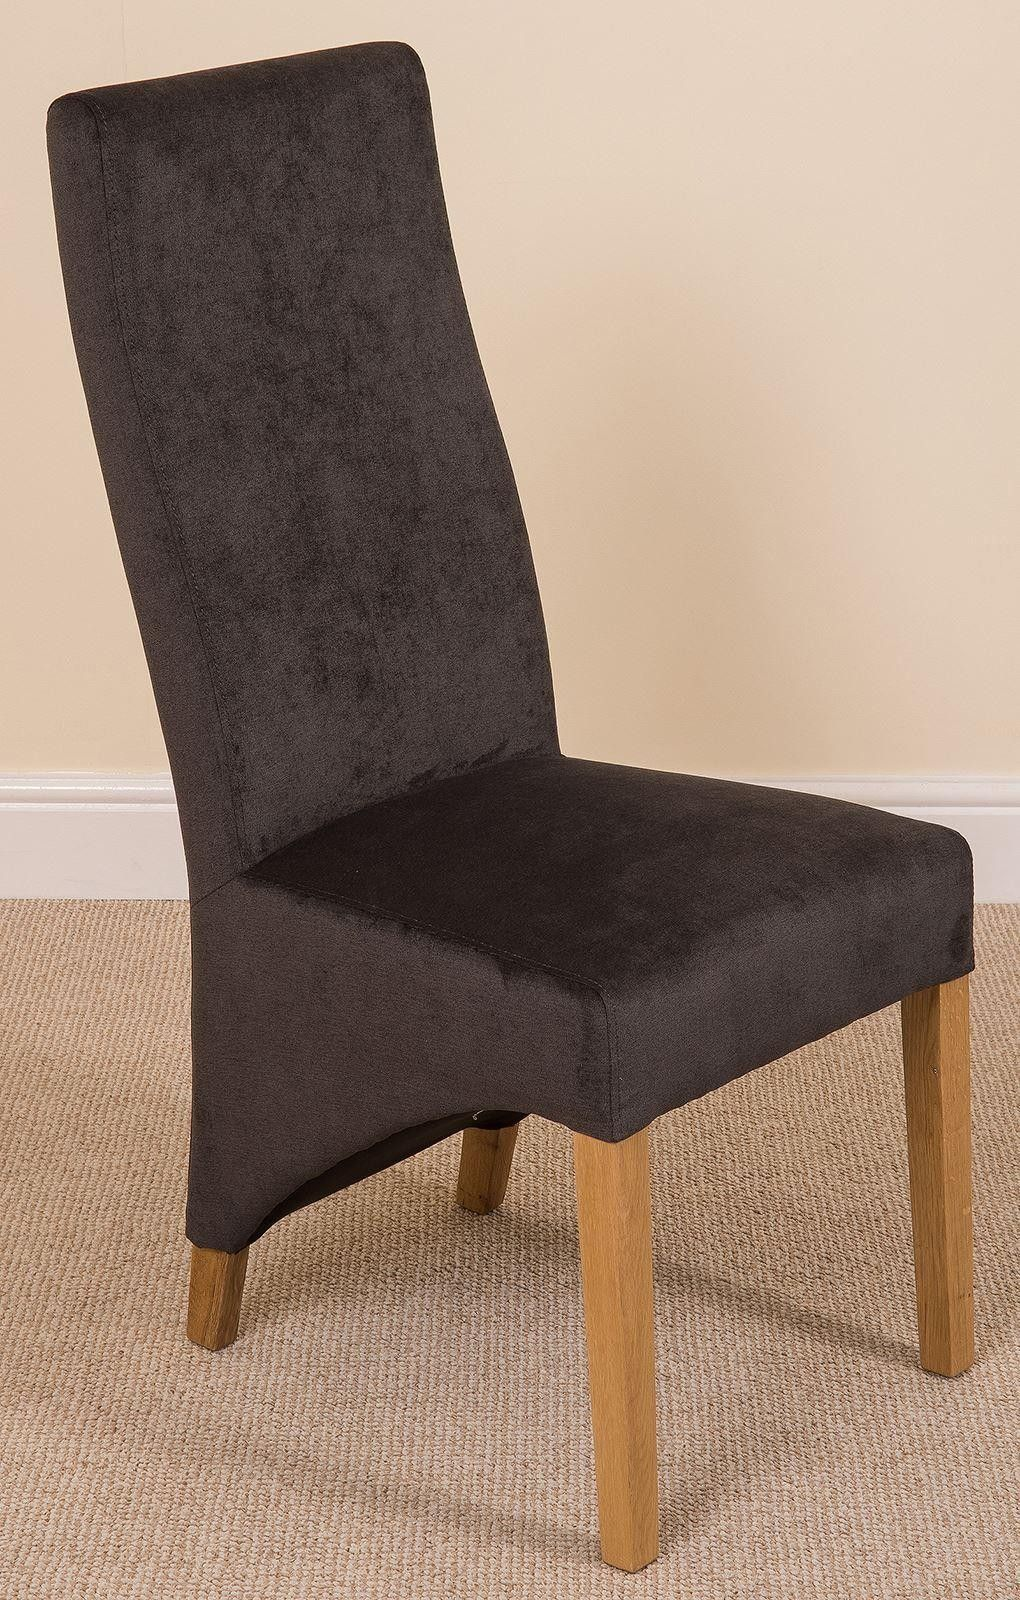 Curved Back Dining Room Chairs Cool Lola Curved Back Dining Chair Black Fabric Combined With The Decorating Design